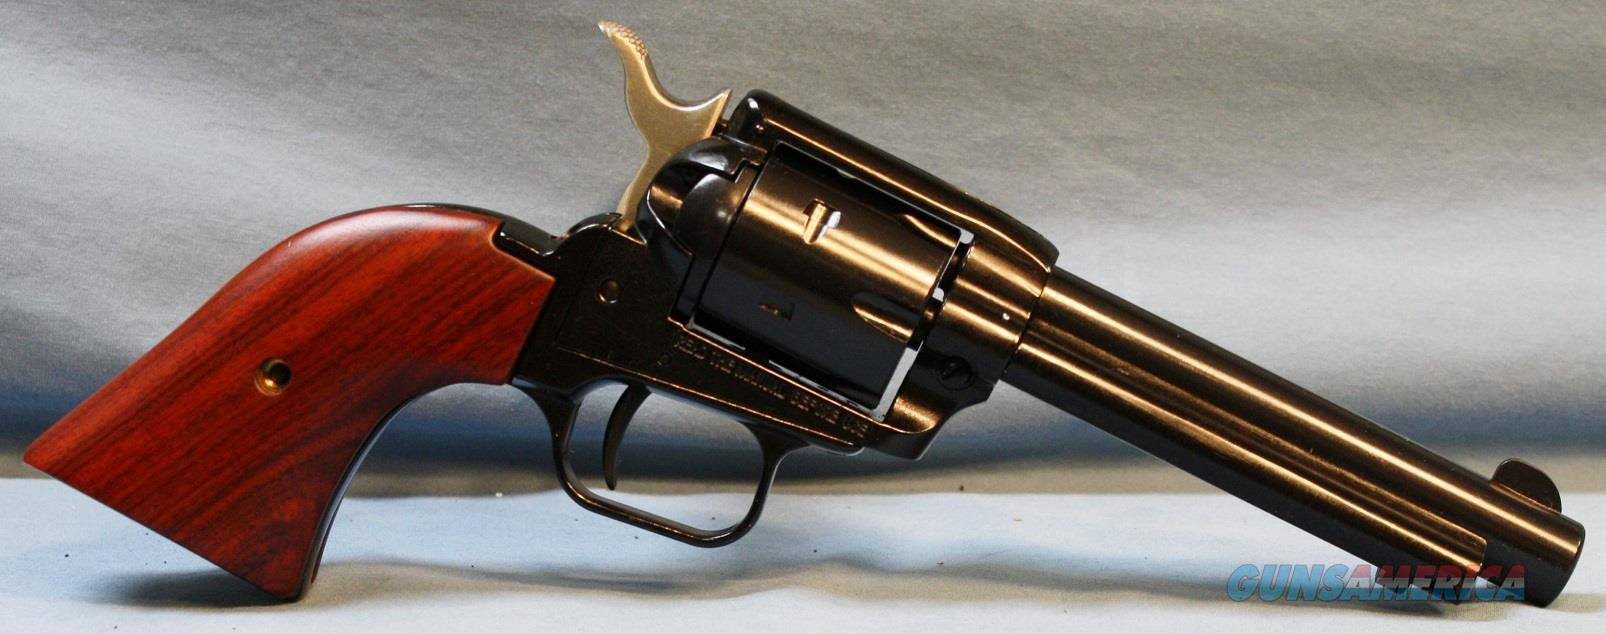 Heritage Rough Rider Single Action Revolver, .22 Long Rifle  Guns > Pistols > Heritage